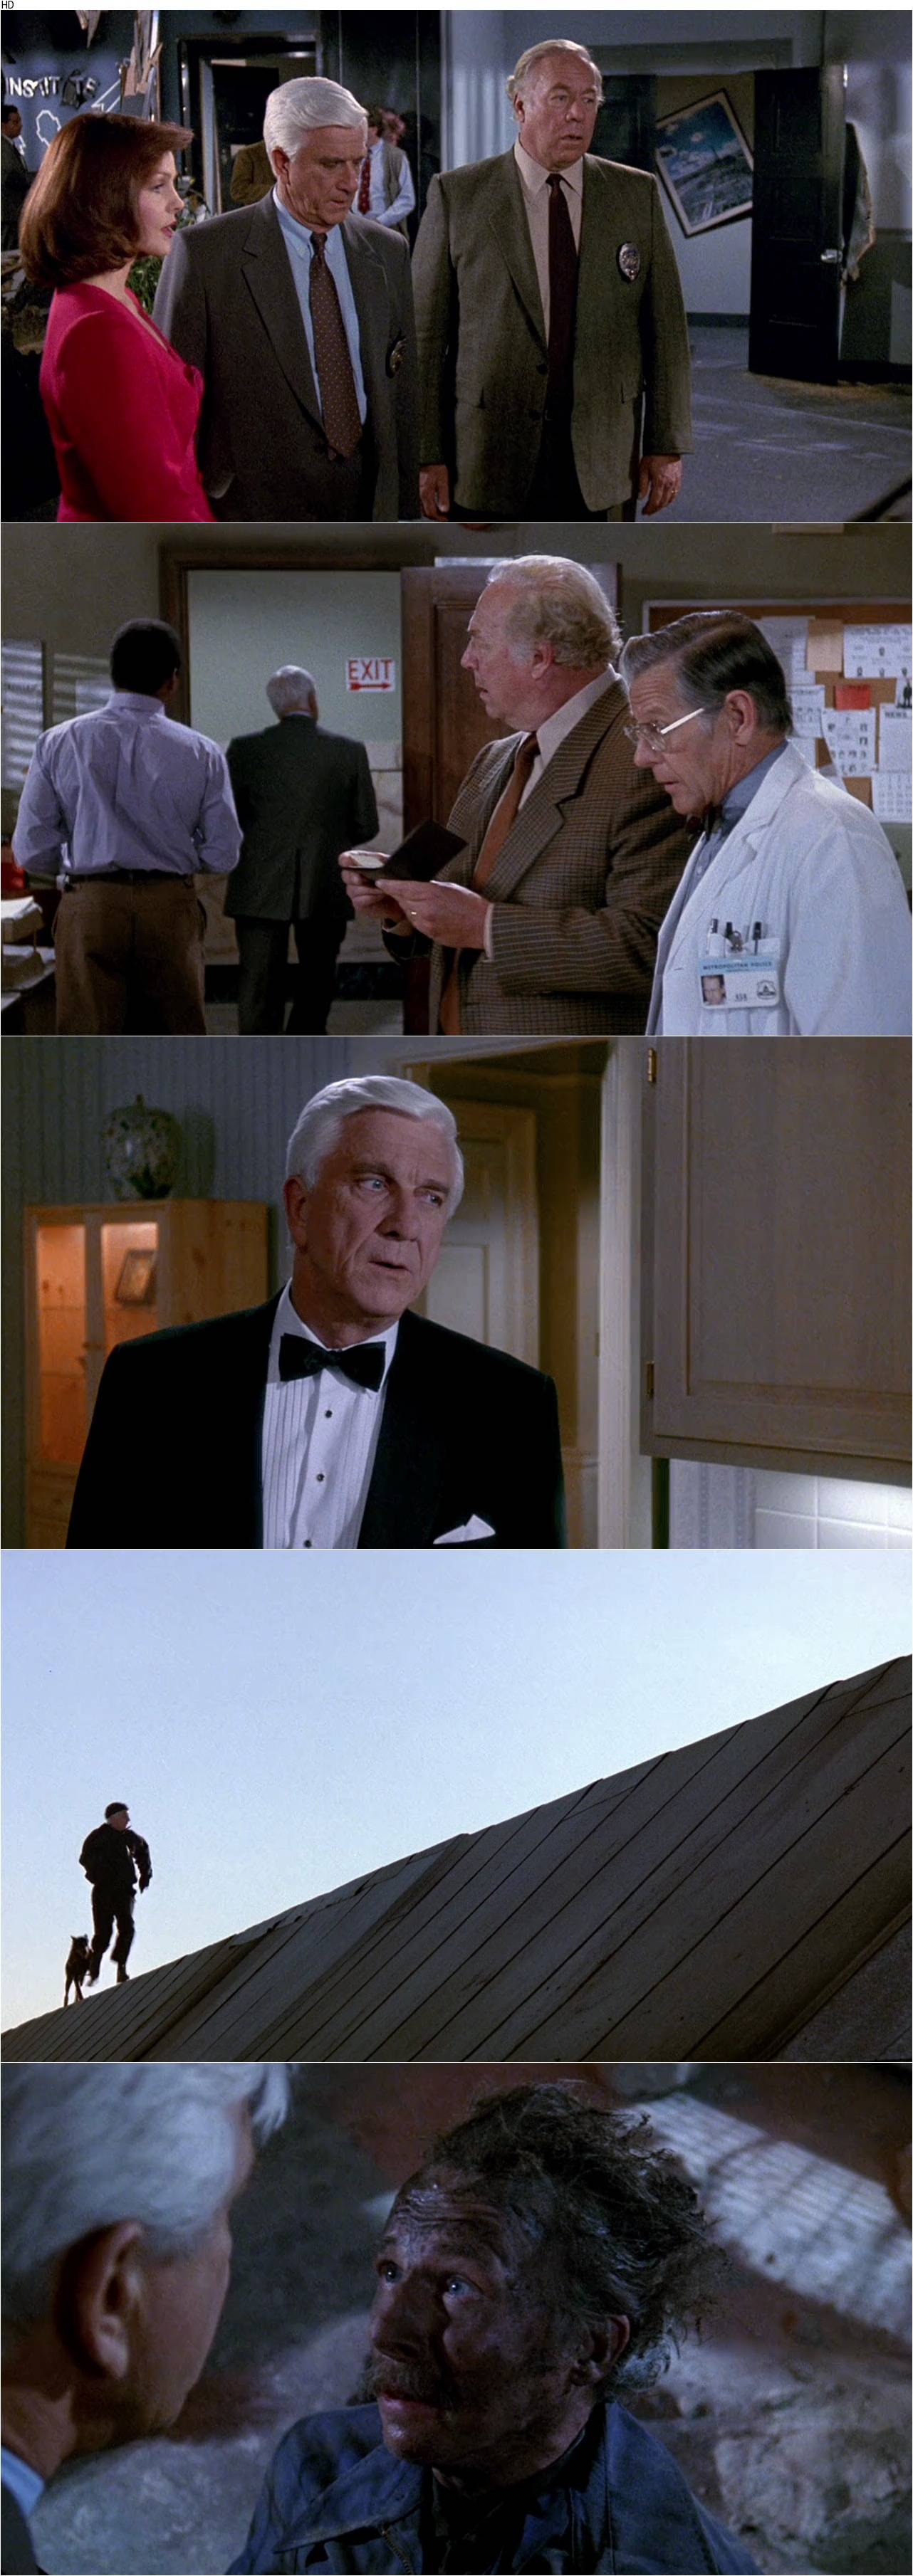 The Naked Gun 2½: The Smell of Fear (1991) Movie Review